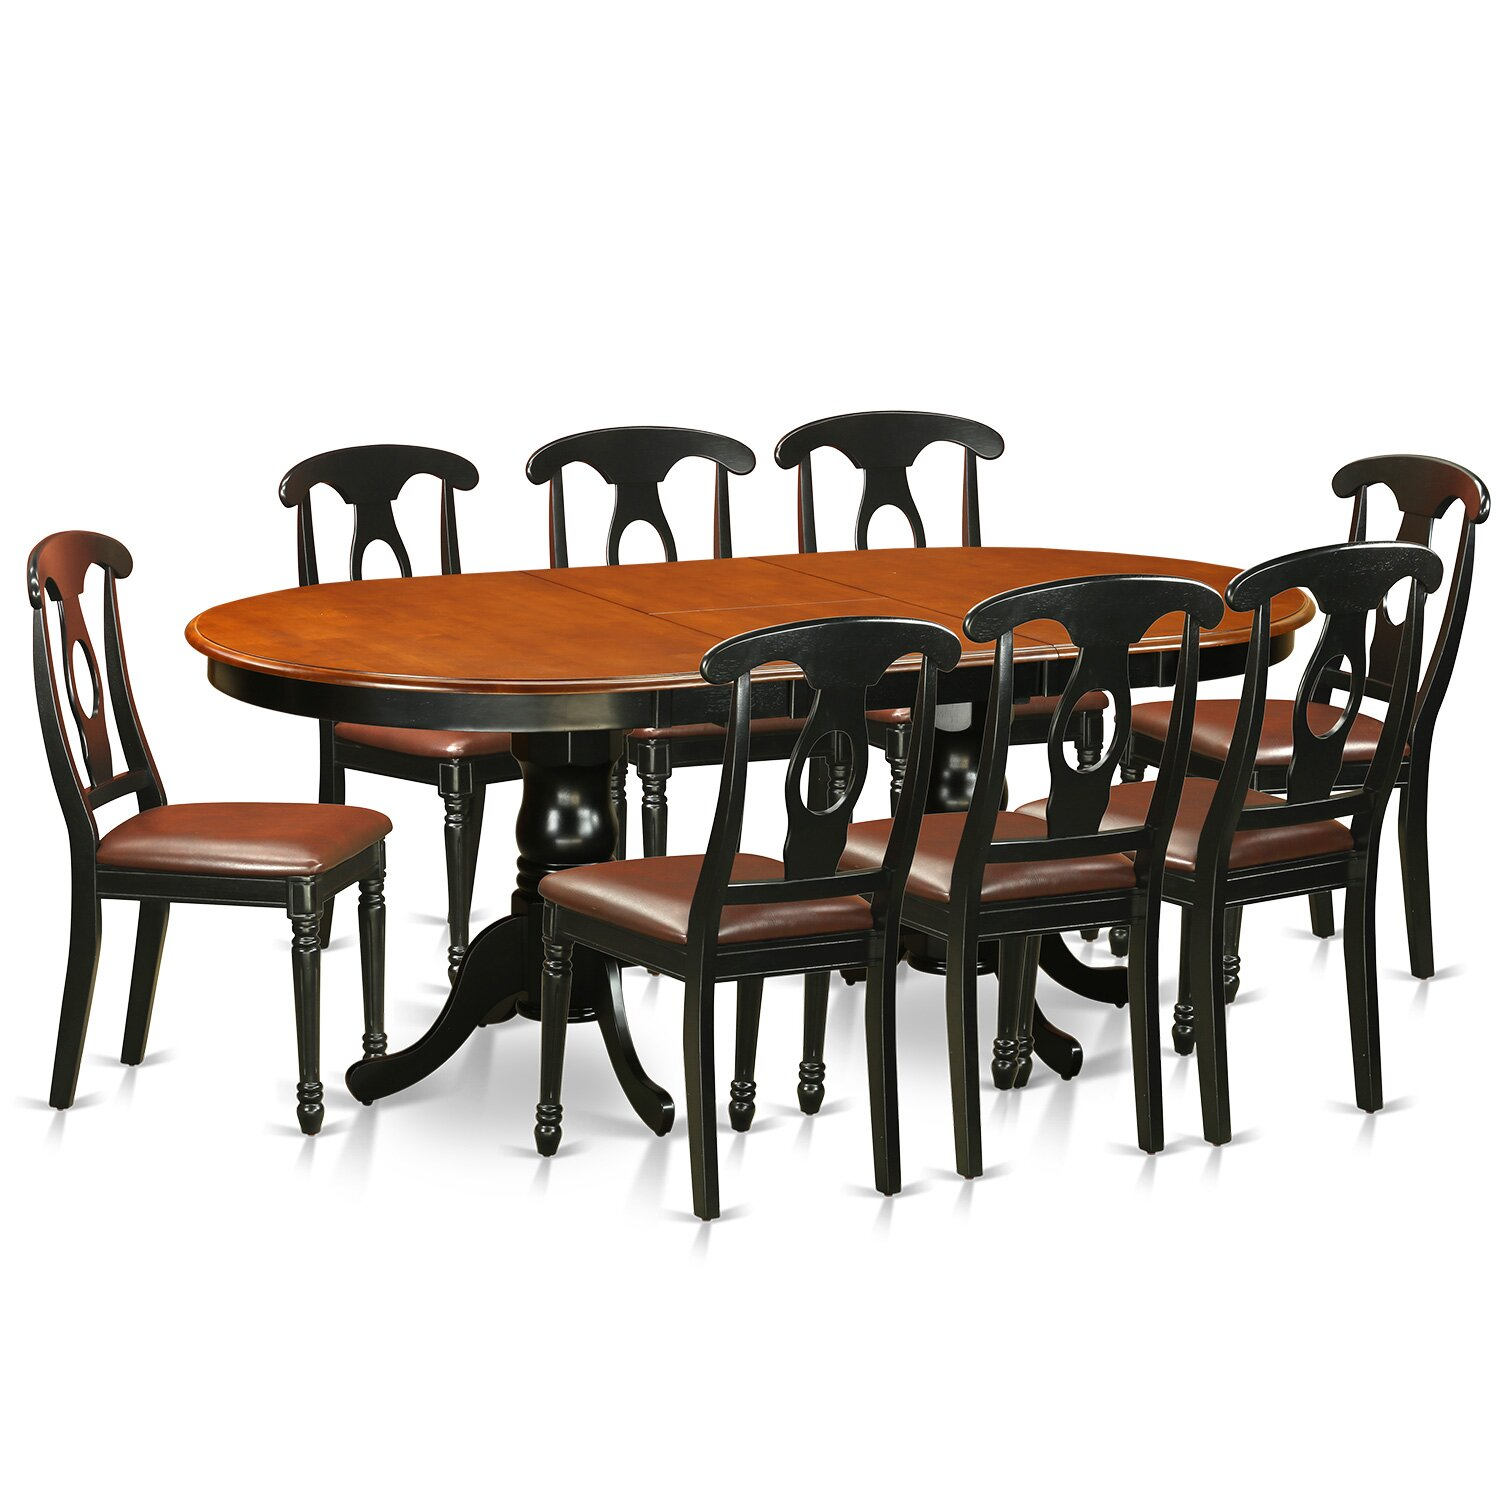 9 Piece Dining Table Set For 8 Dining Room Table With 8: East West Plainville 9 Piece Dining Set & Reviews